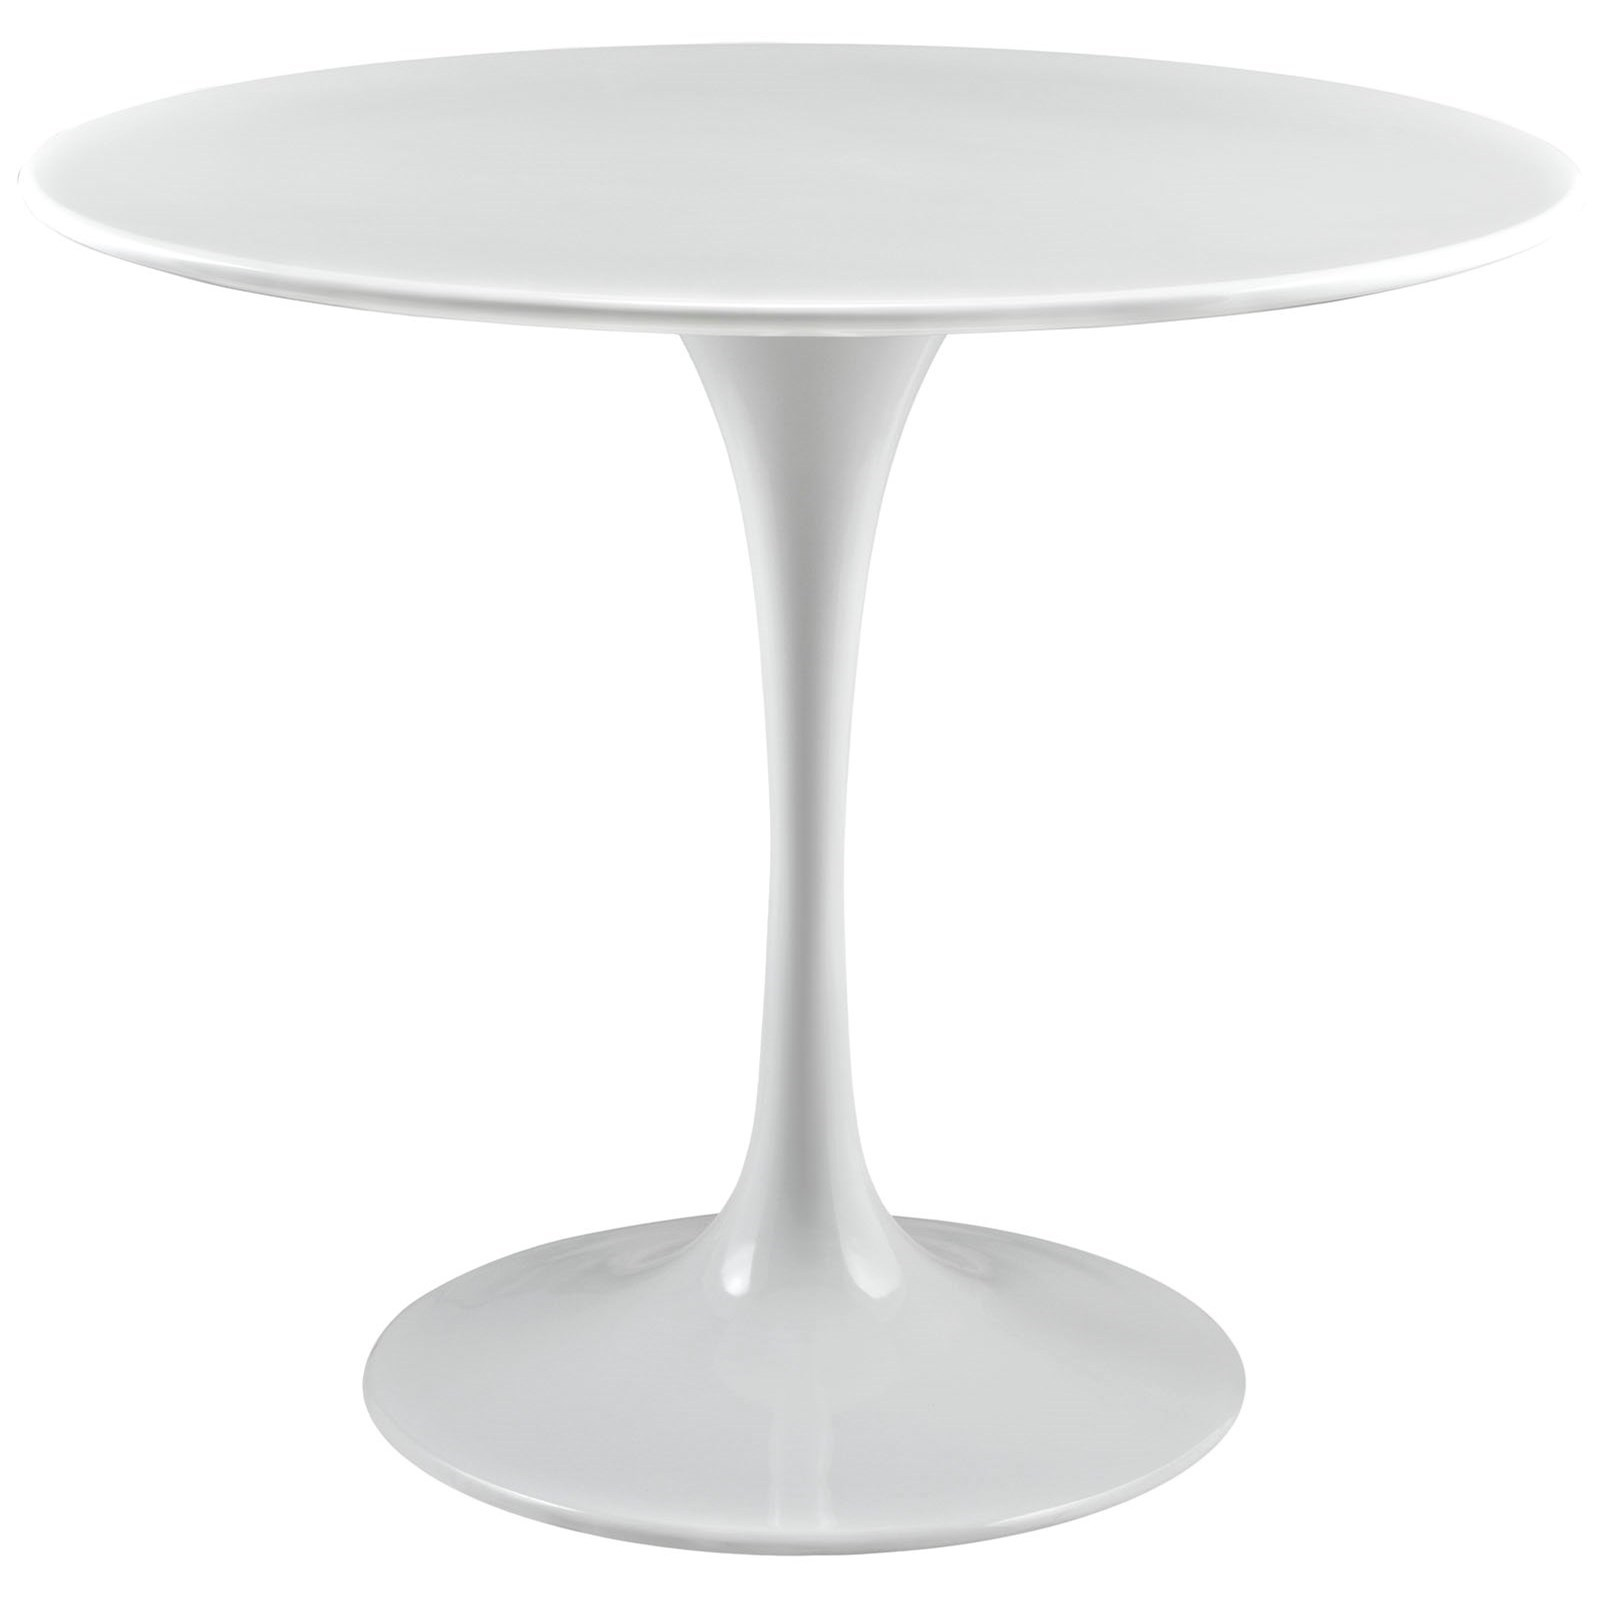 Modway Lippa White Eei 1116 Whi 36 Round Top Dining Table Del Sol Furniture Dining Tables